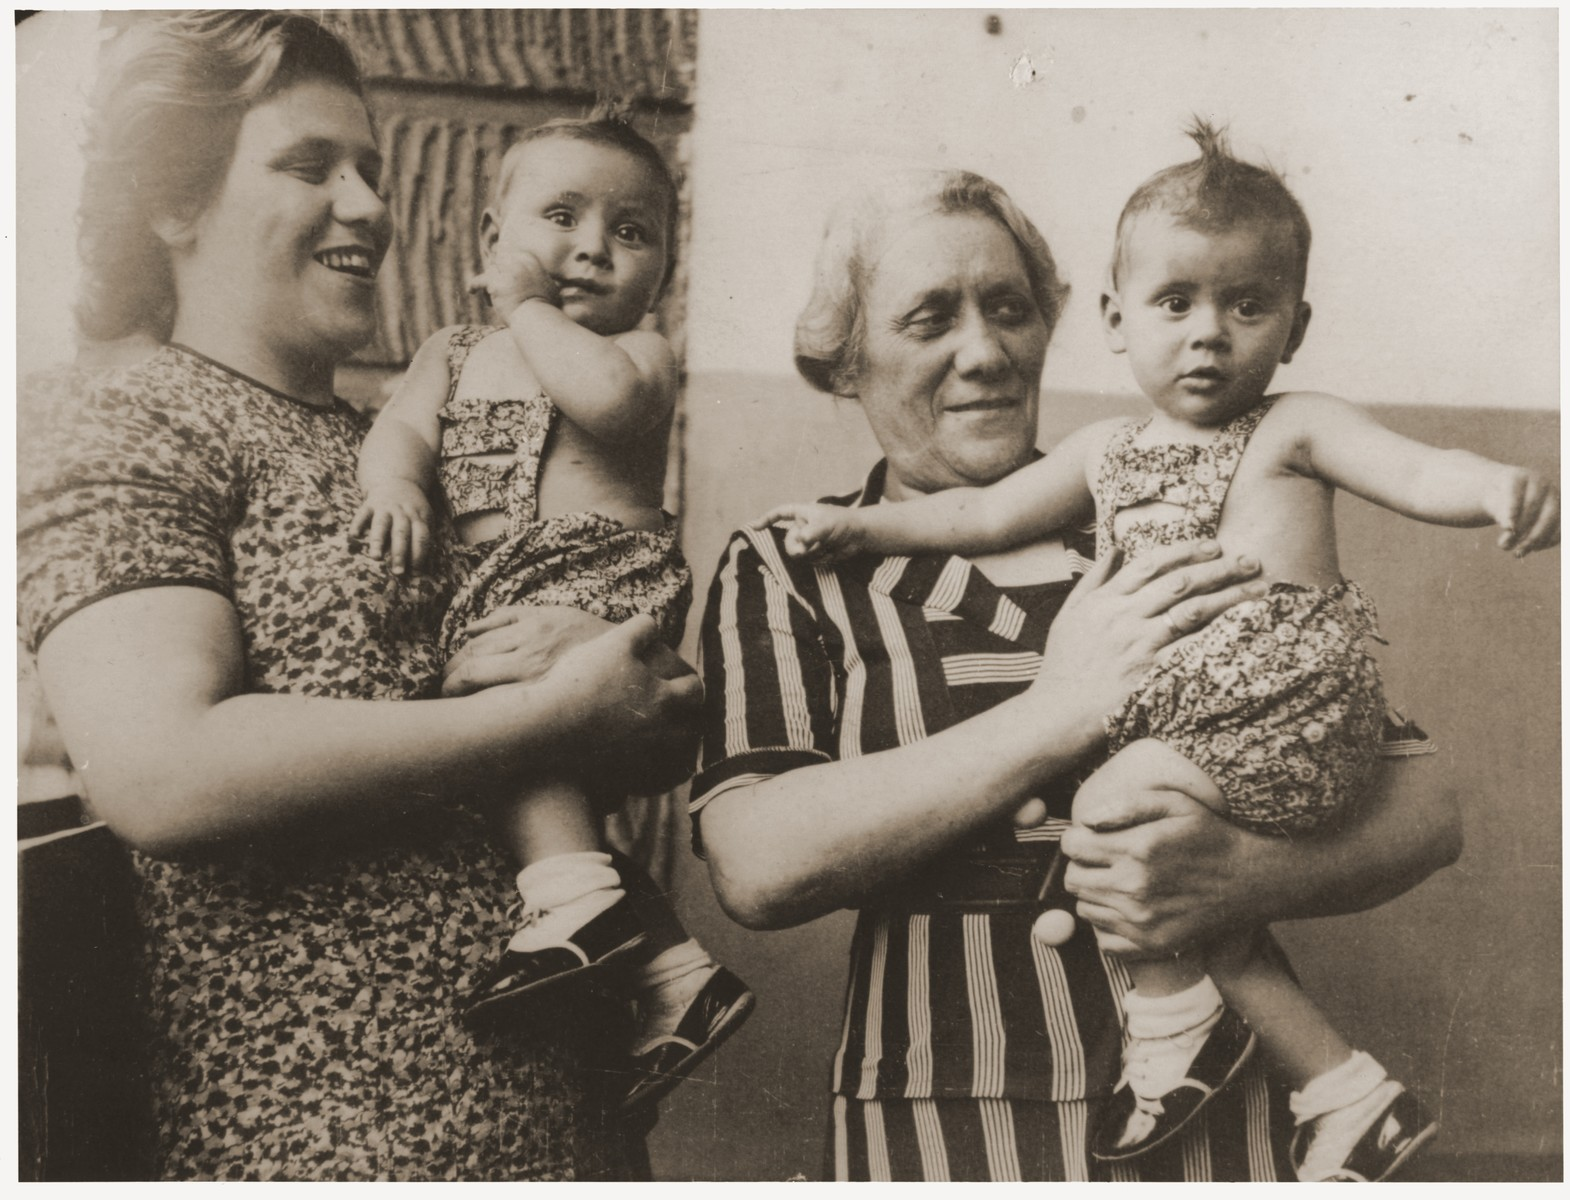 Selma Heimann and Frieda (nee Heimann) Perl hold Ellinor (now Eleanor Gerson) and Evelyn Perl (now Evelyn Pearl).